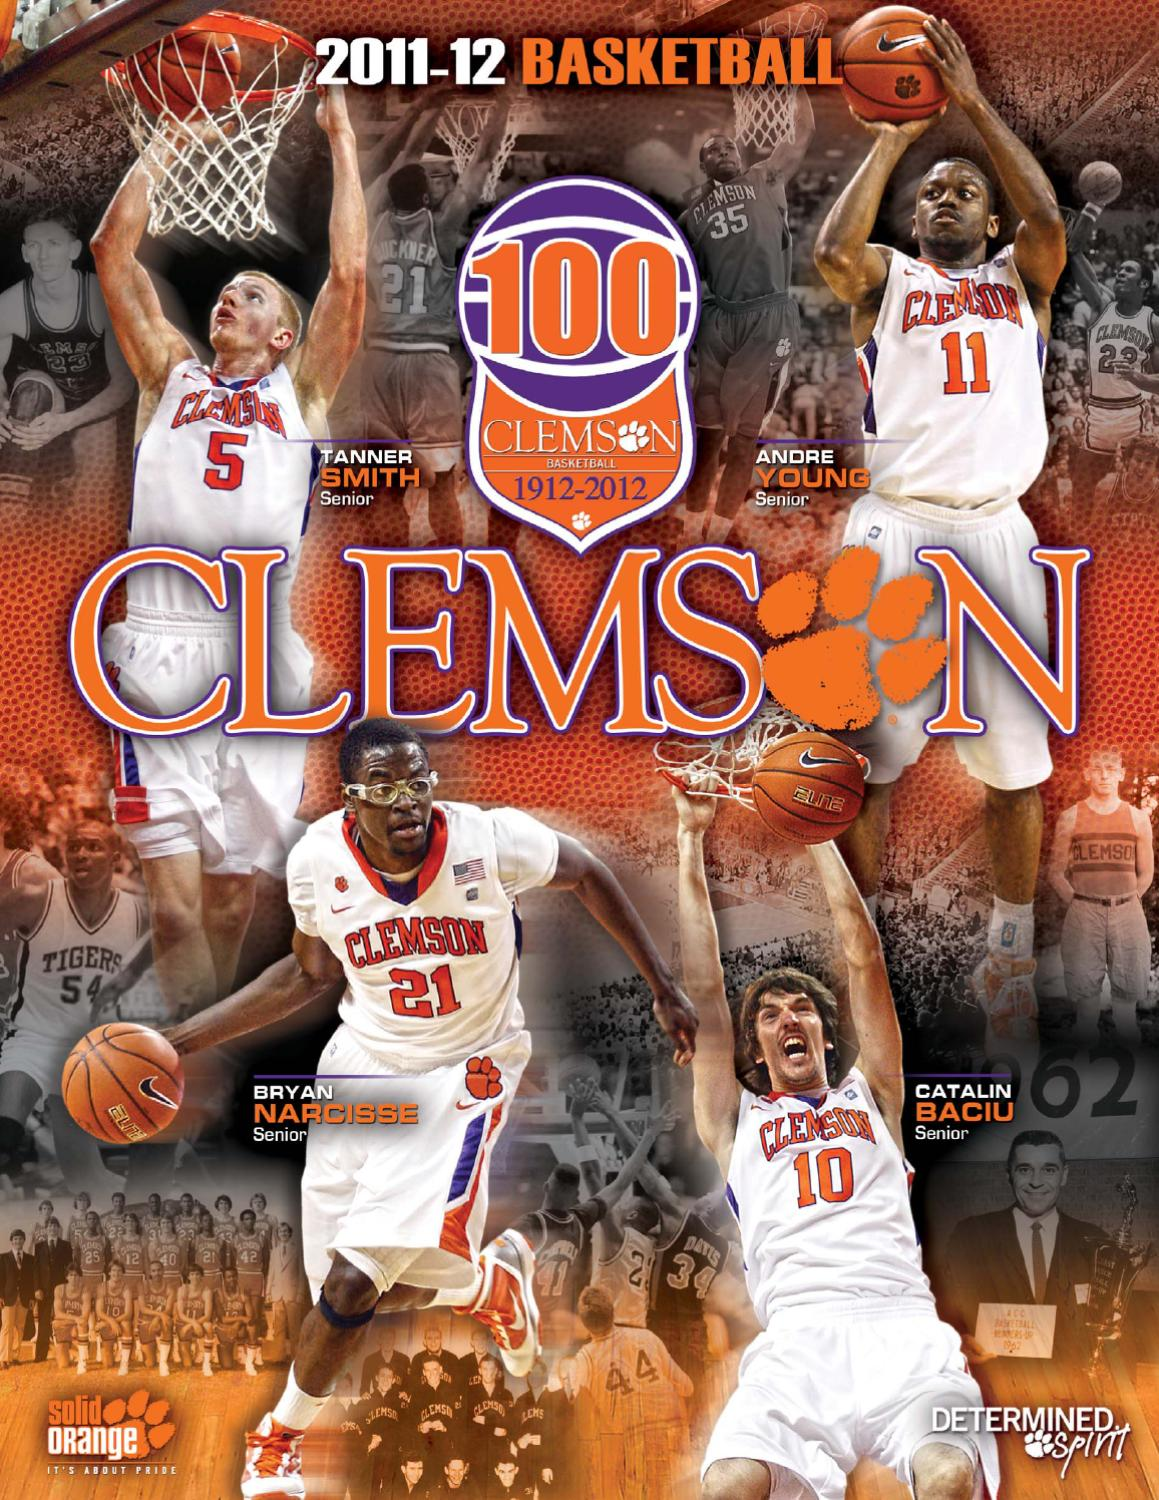 9c32ae7a80dc 2011-12 Clemson Men s Basketball Media Guide by Clemson Tigers - issuu